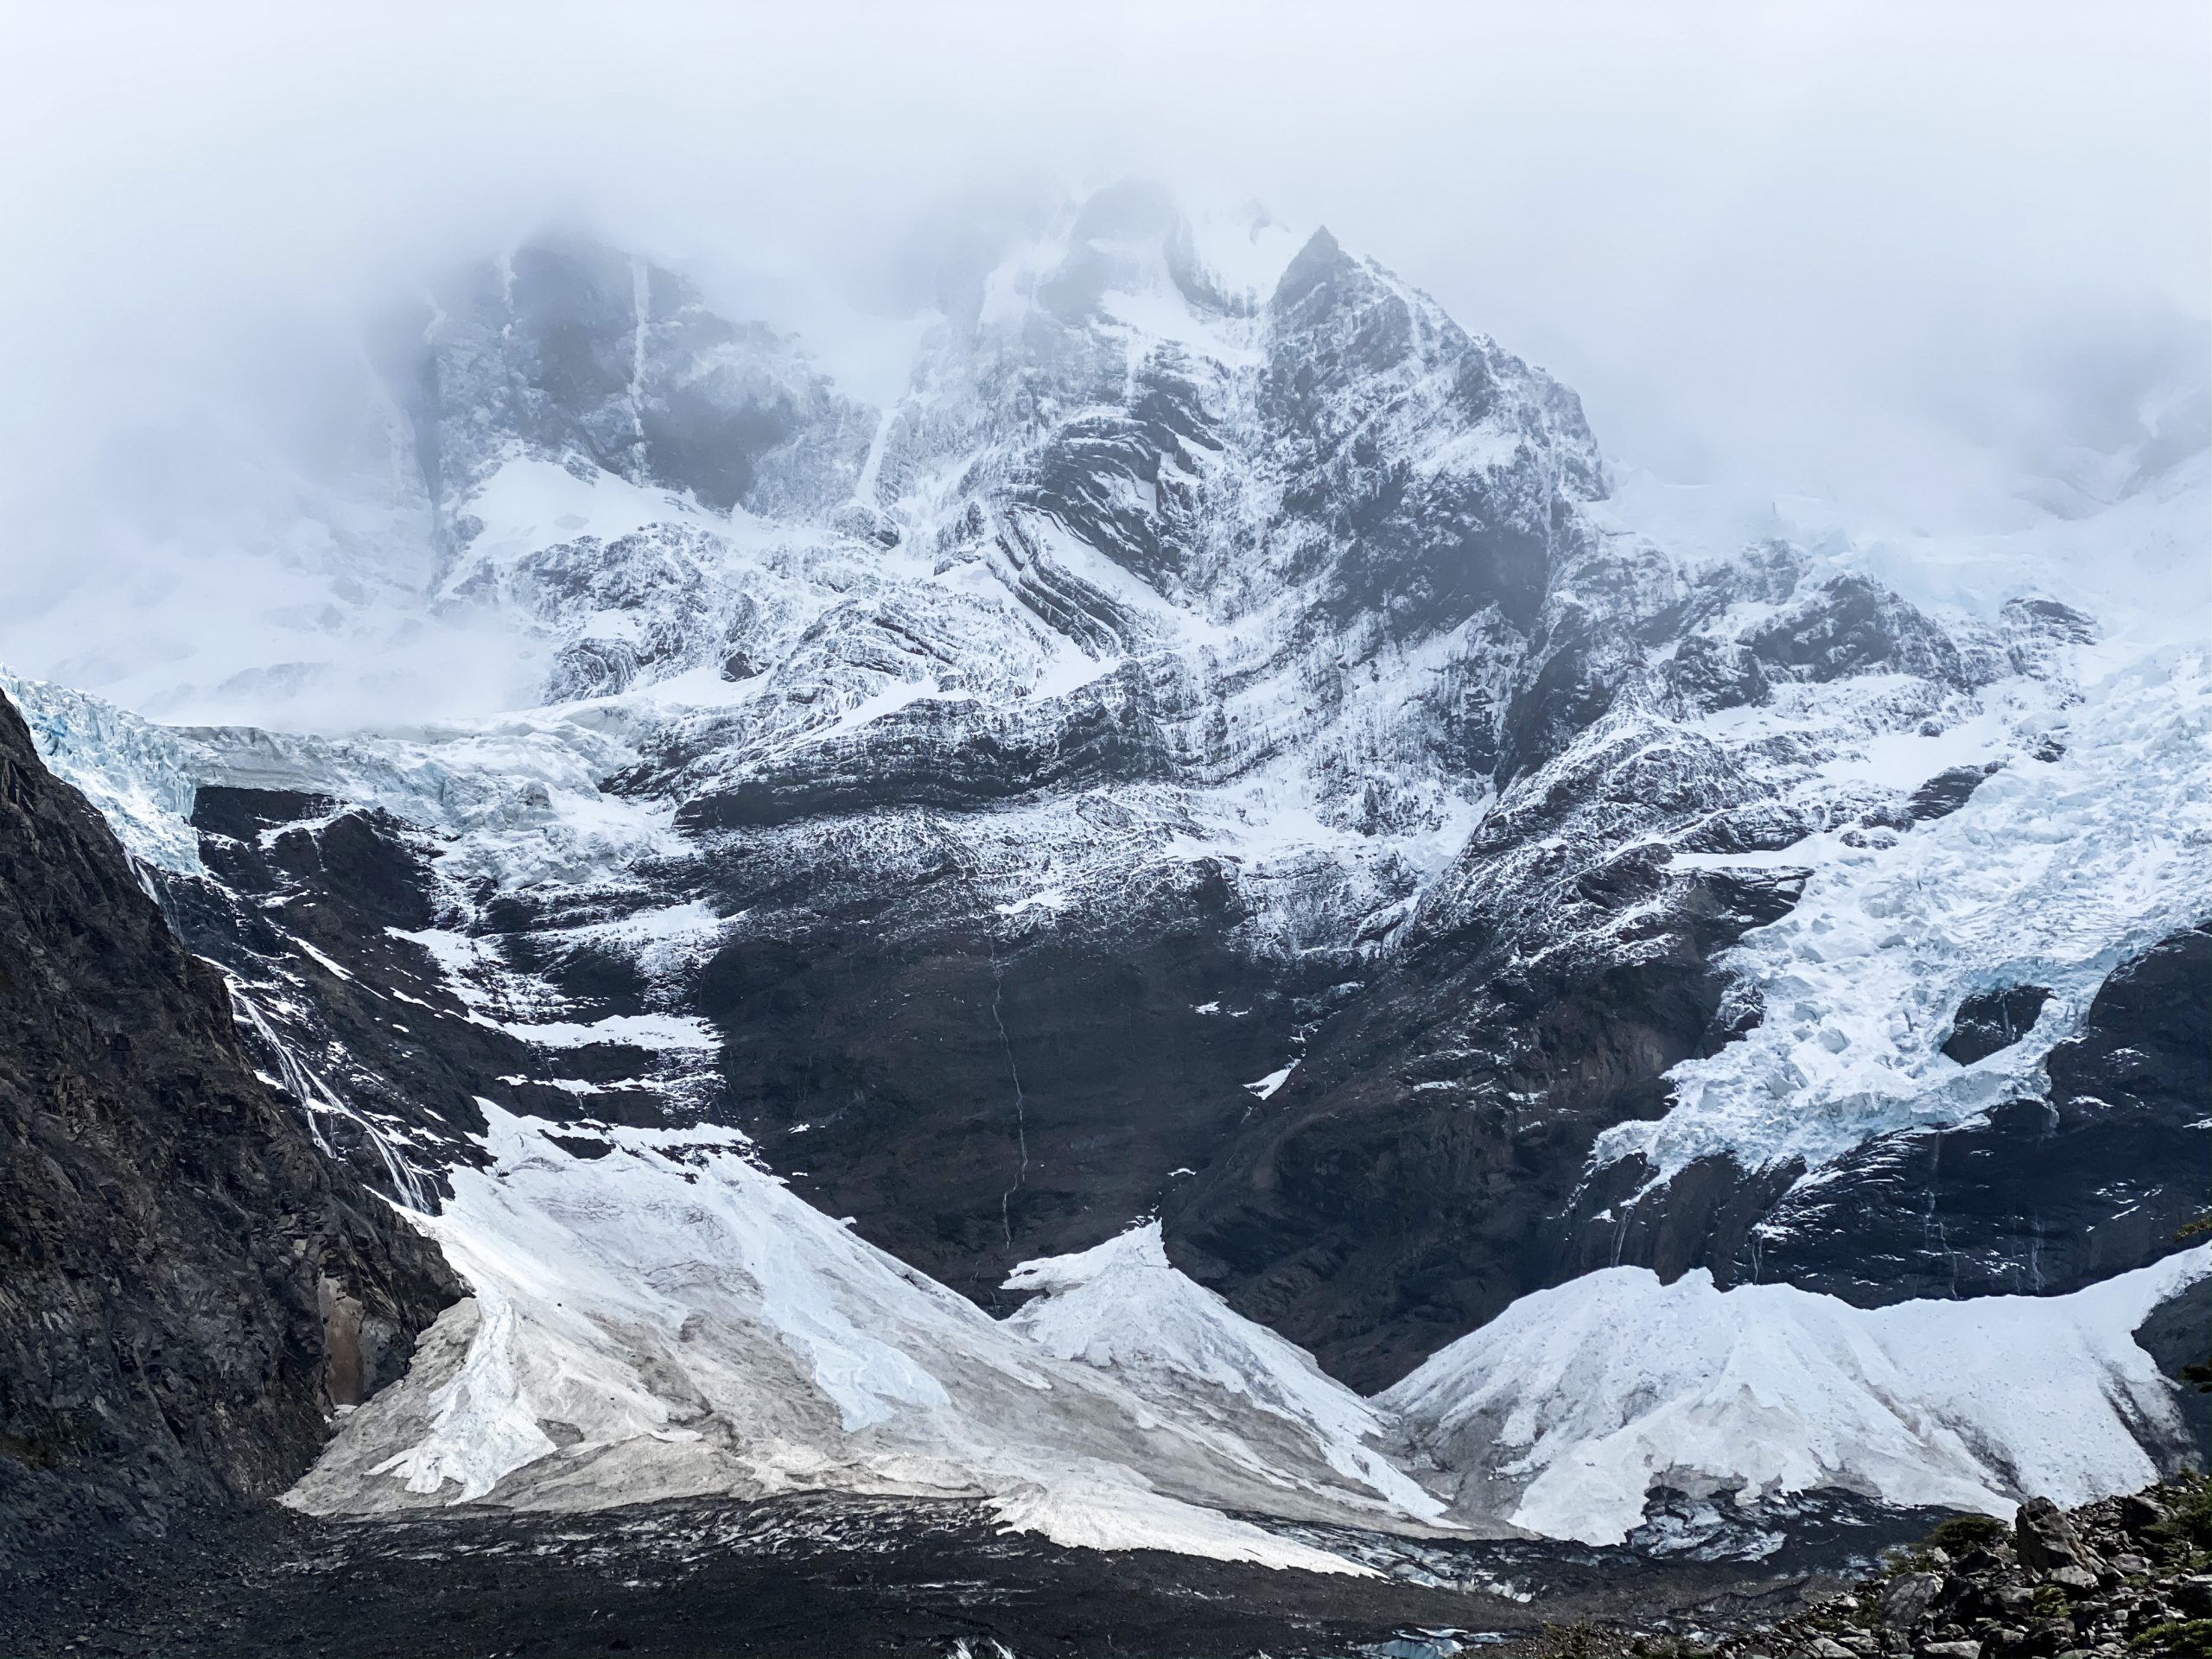 Hiking the Torres del Paine W Trek